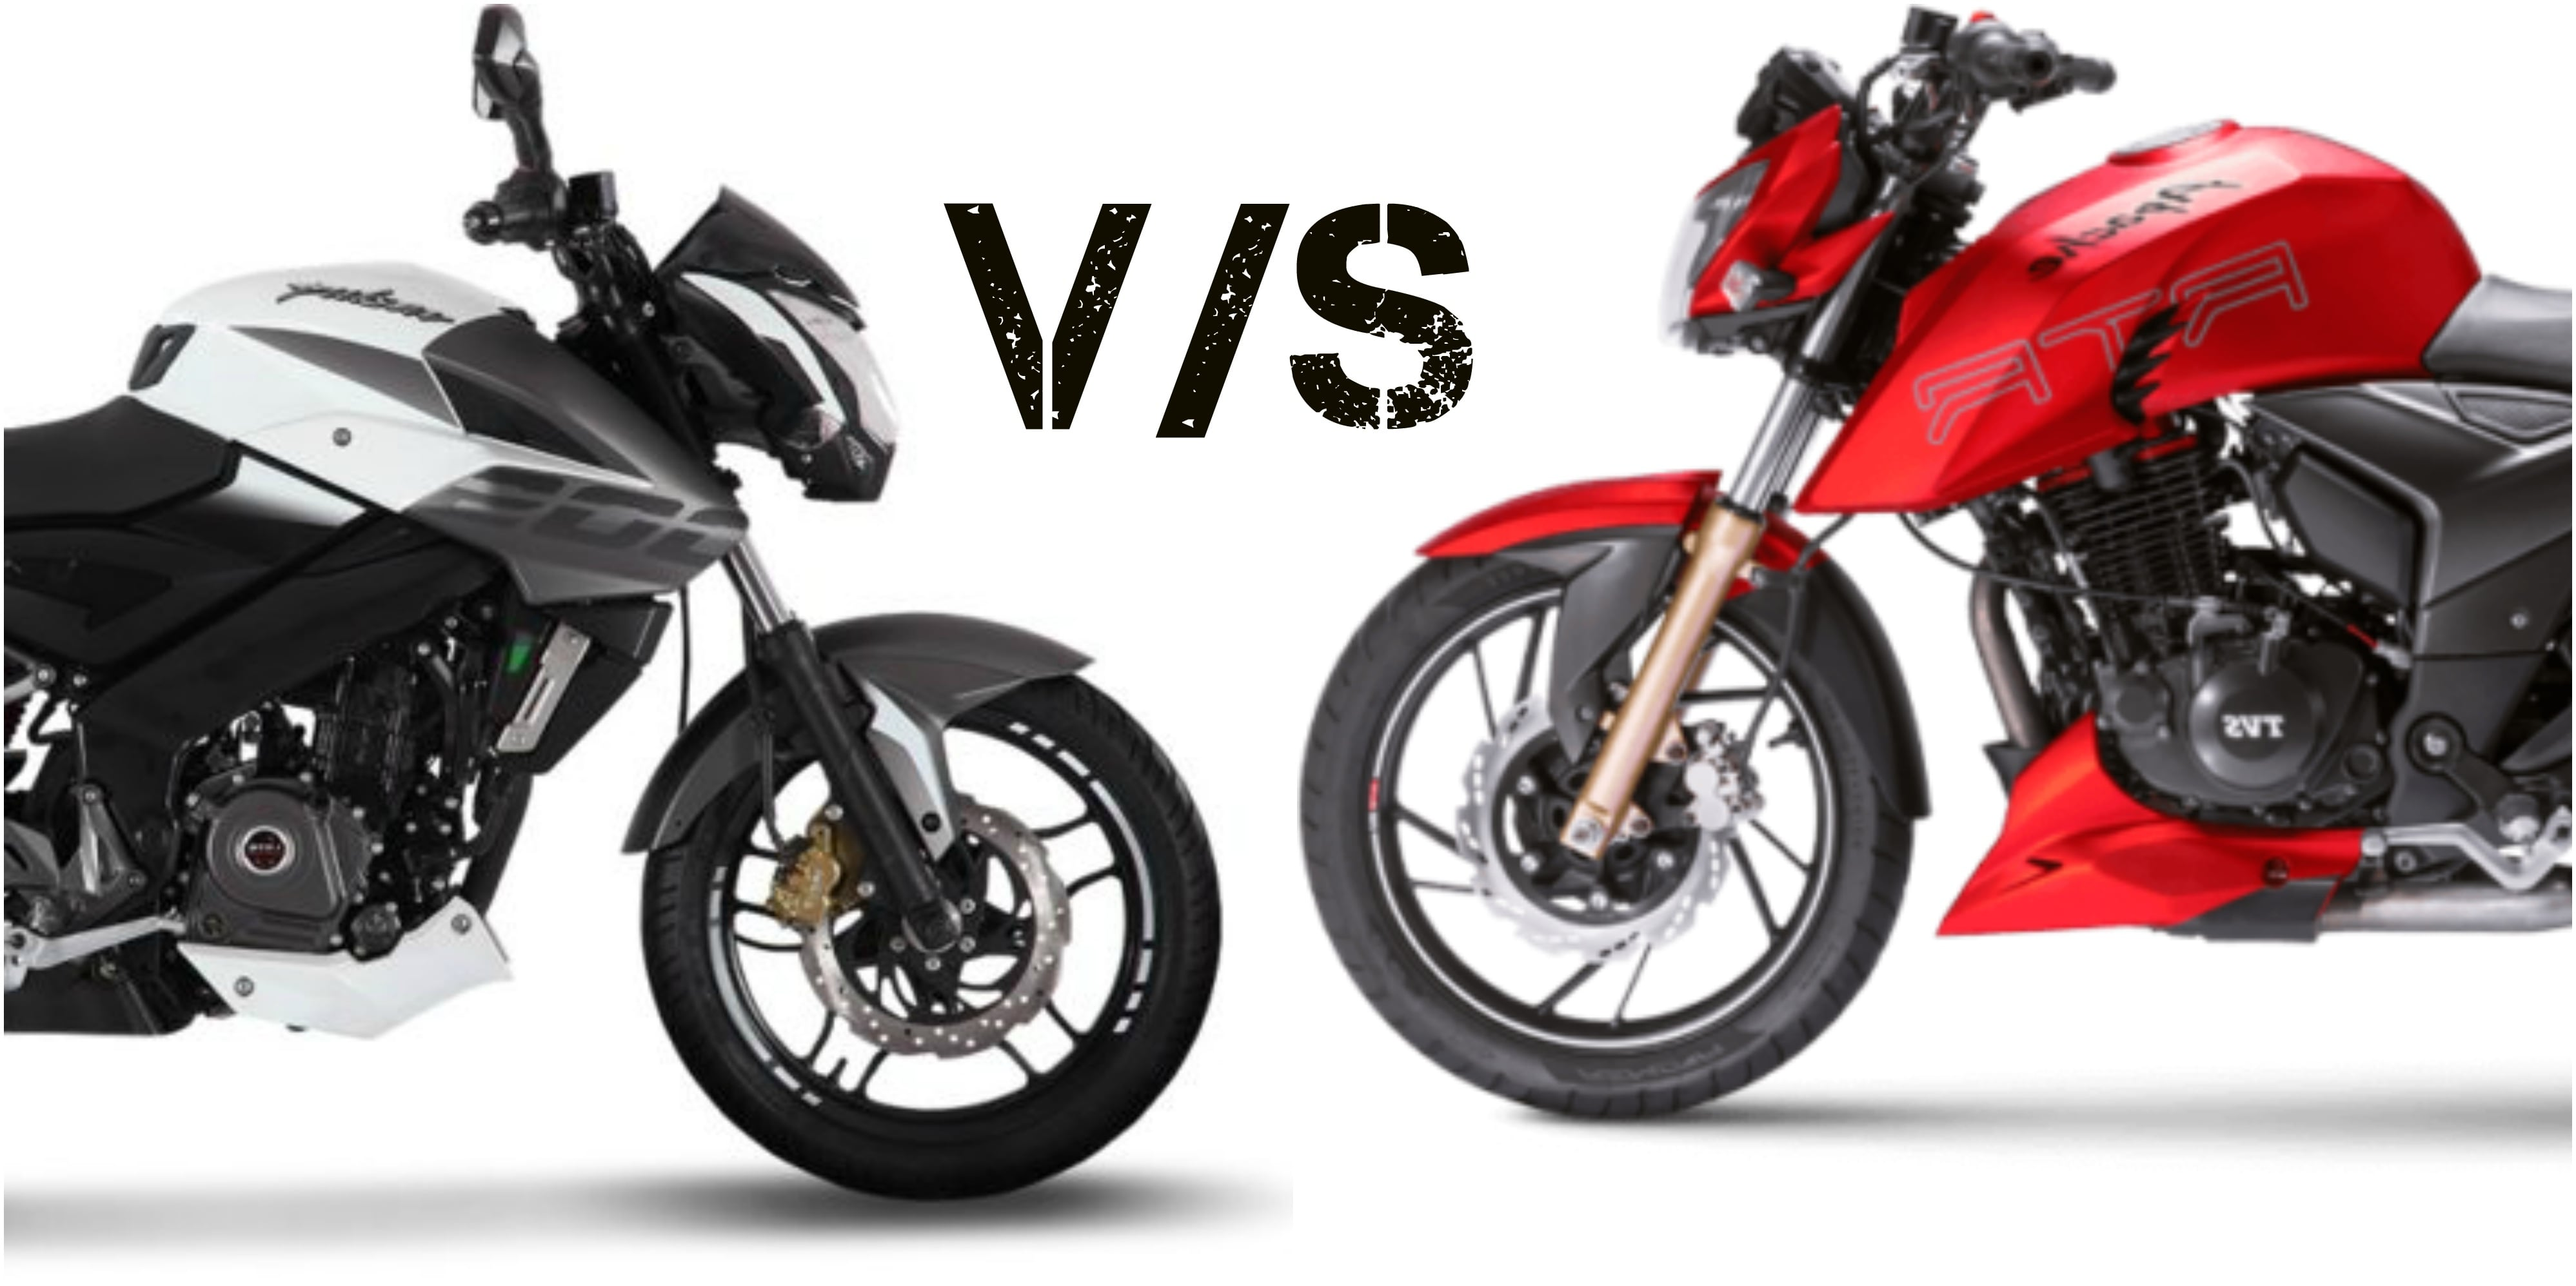 Astonishing Tvs Apache Rtr 200 4V Vs Bajaj Pulsar Ns200 Specs Comparison Gmtry Best Dining Table And Chair Ideas Images Gmtryco